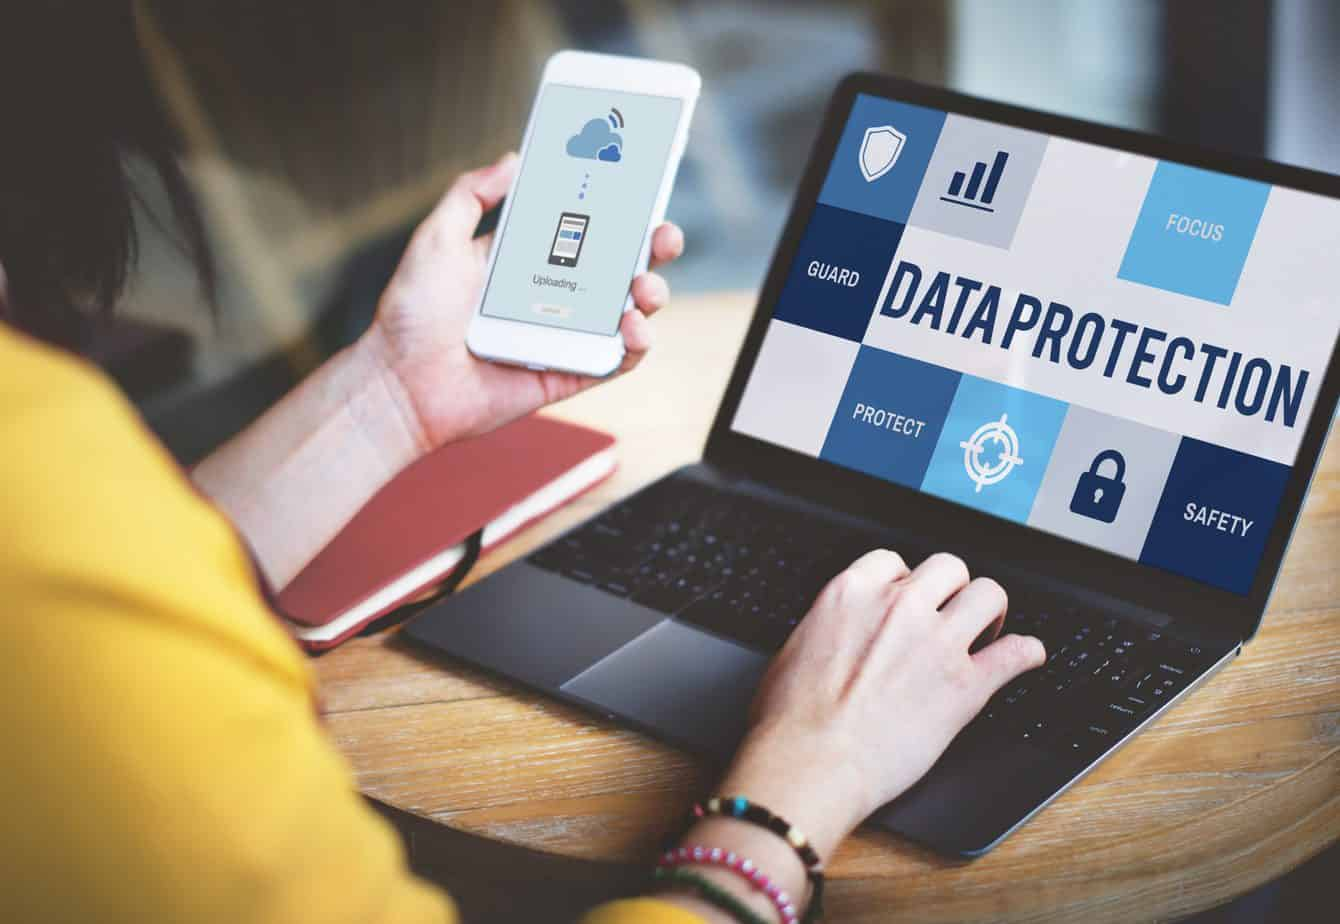 data protection laptop